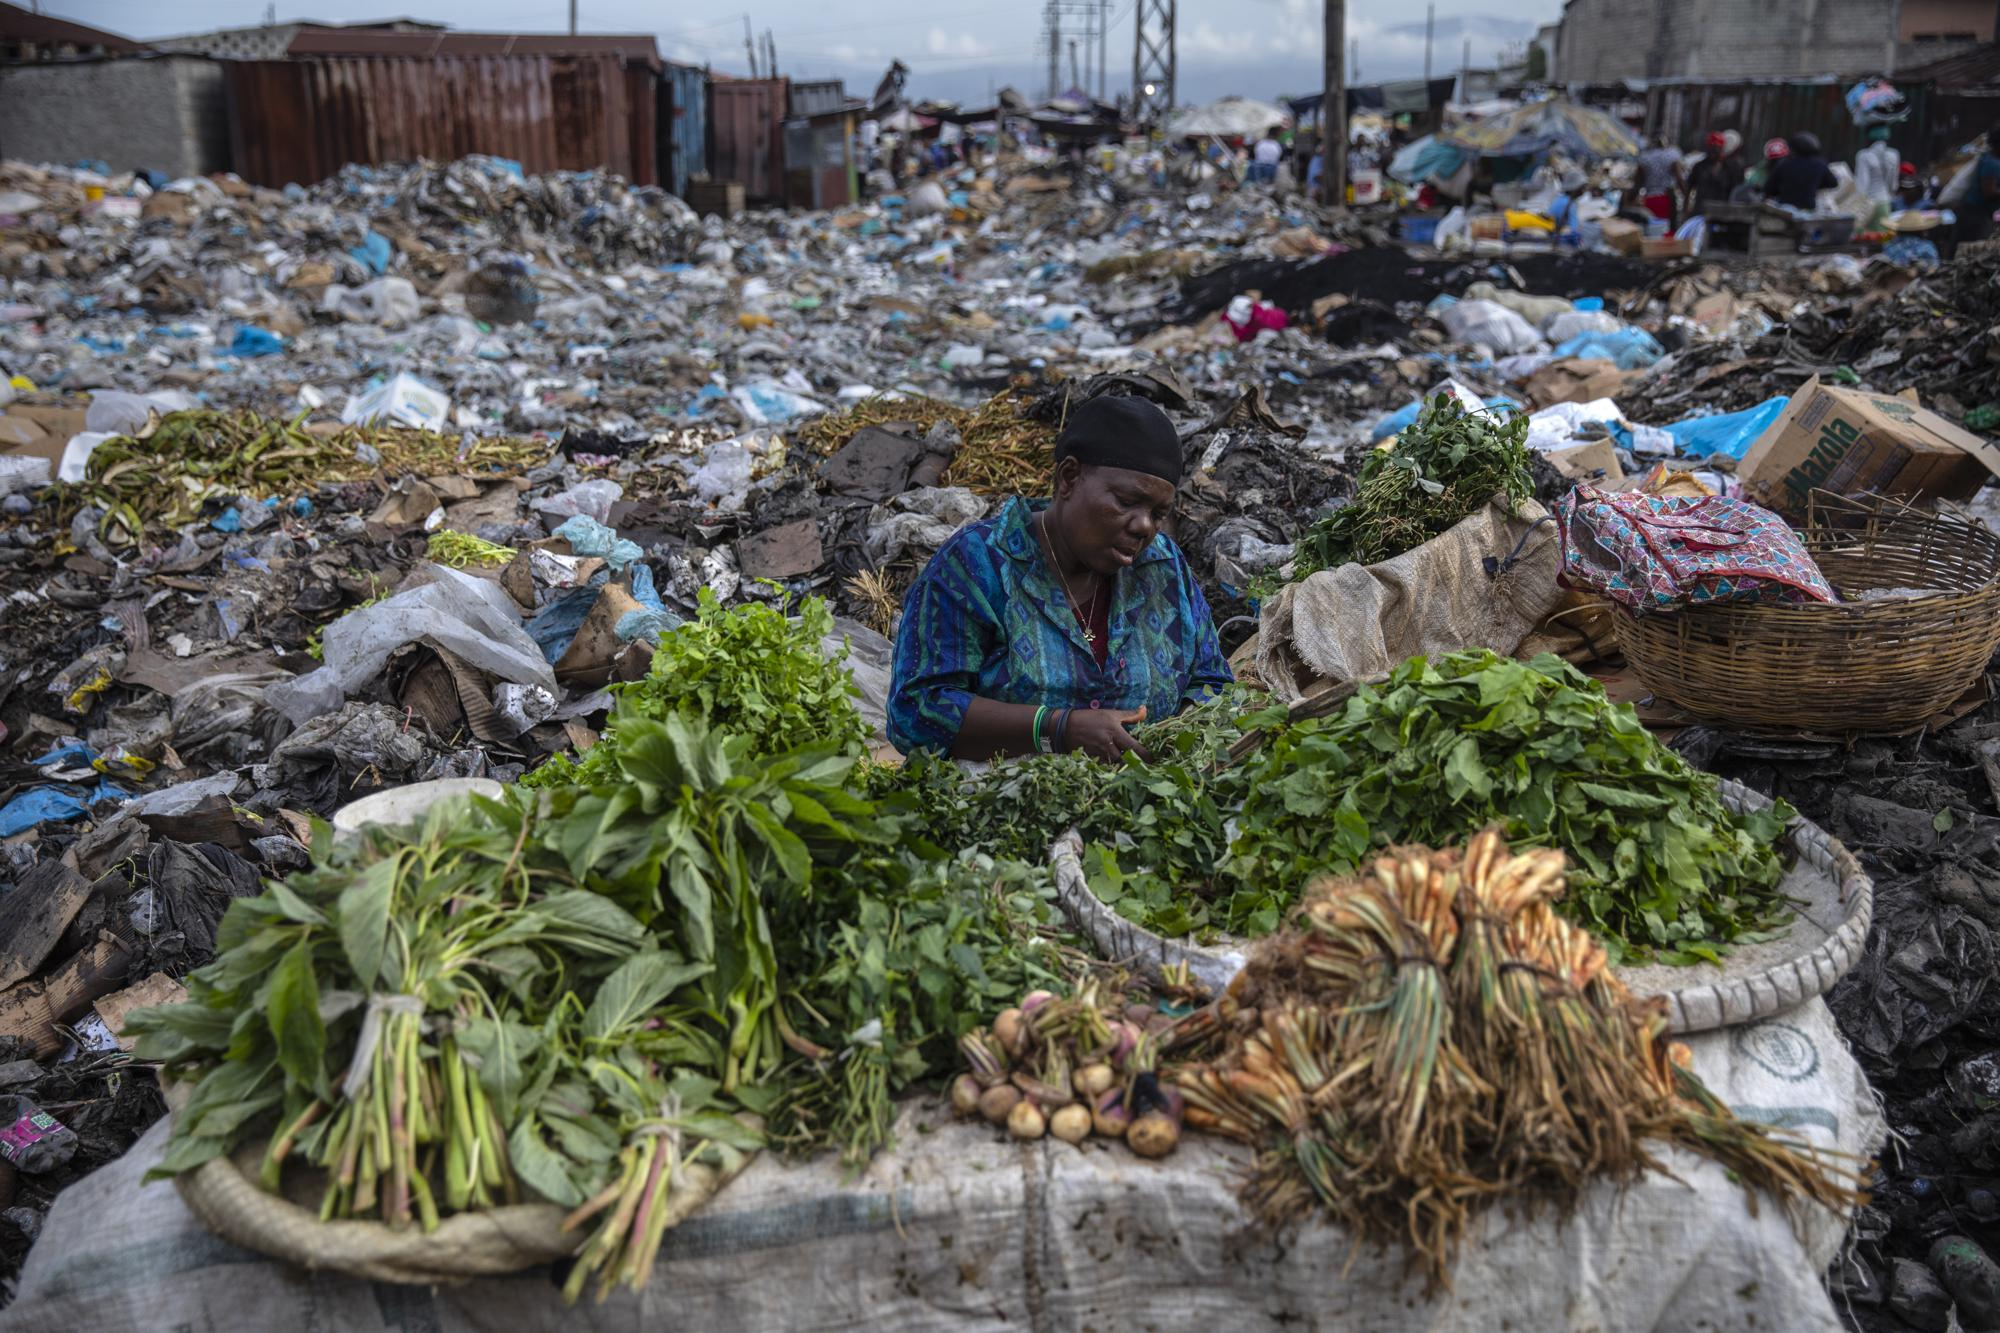 A woman selling greens waits for customers in the Croix des Bosalles market in Port-au-Prince, Haiti, Wednesday, Sept. 22, 2021. The floor of the market is thick with decomposing trash and, in some places, small fires of burning trash. (AP Photo/Rodrigo Abd)